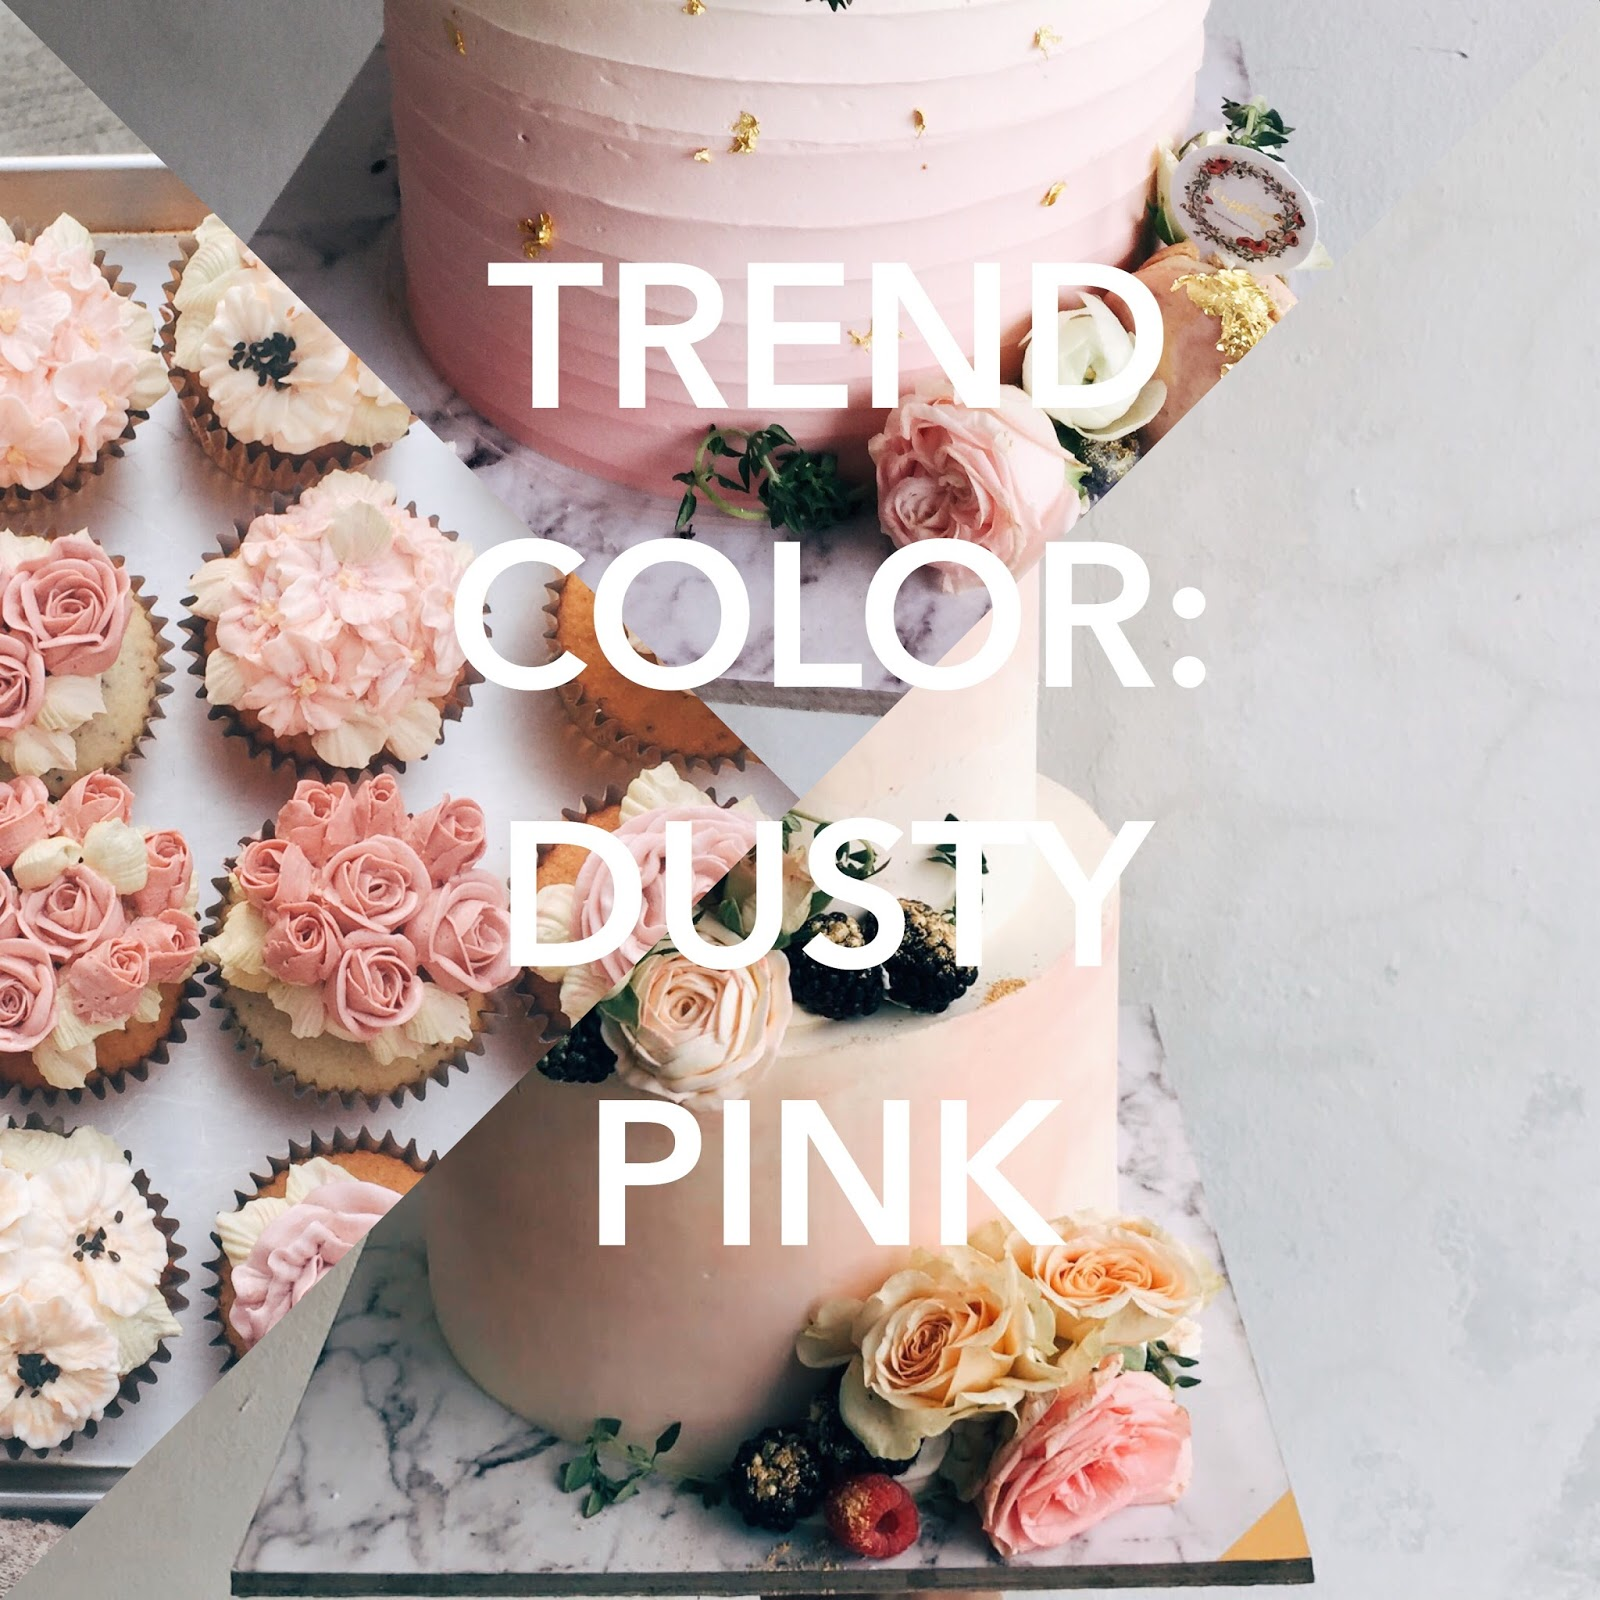 Color Trending Pink: Trend Colors: Dusty Pink